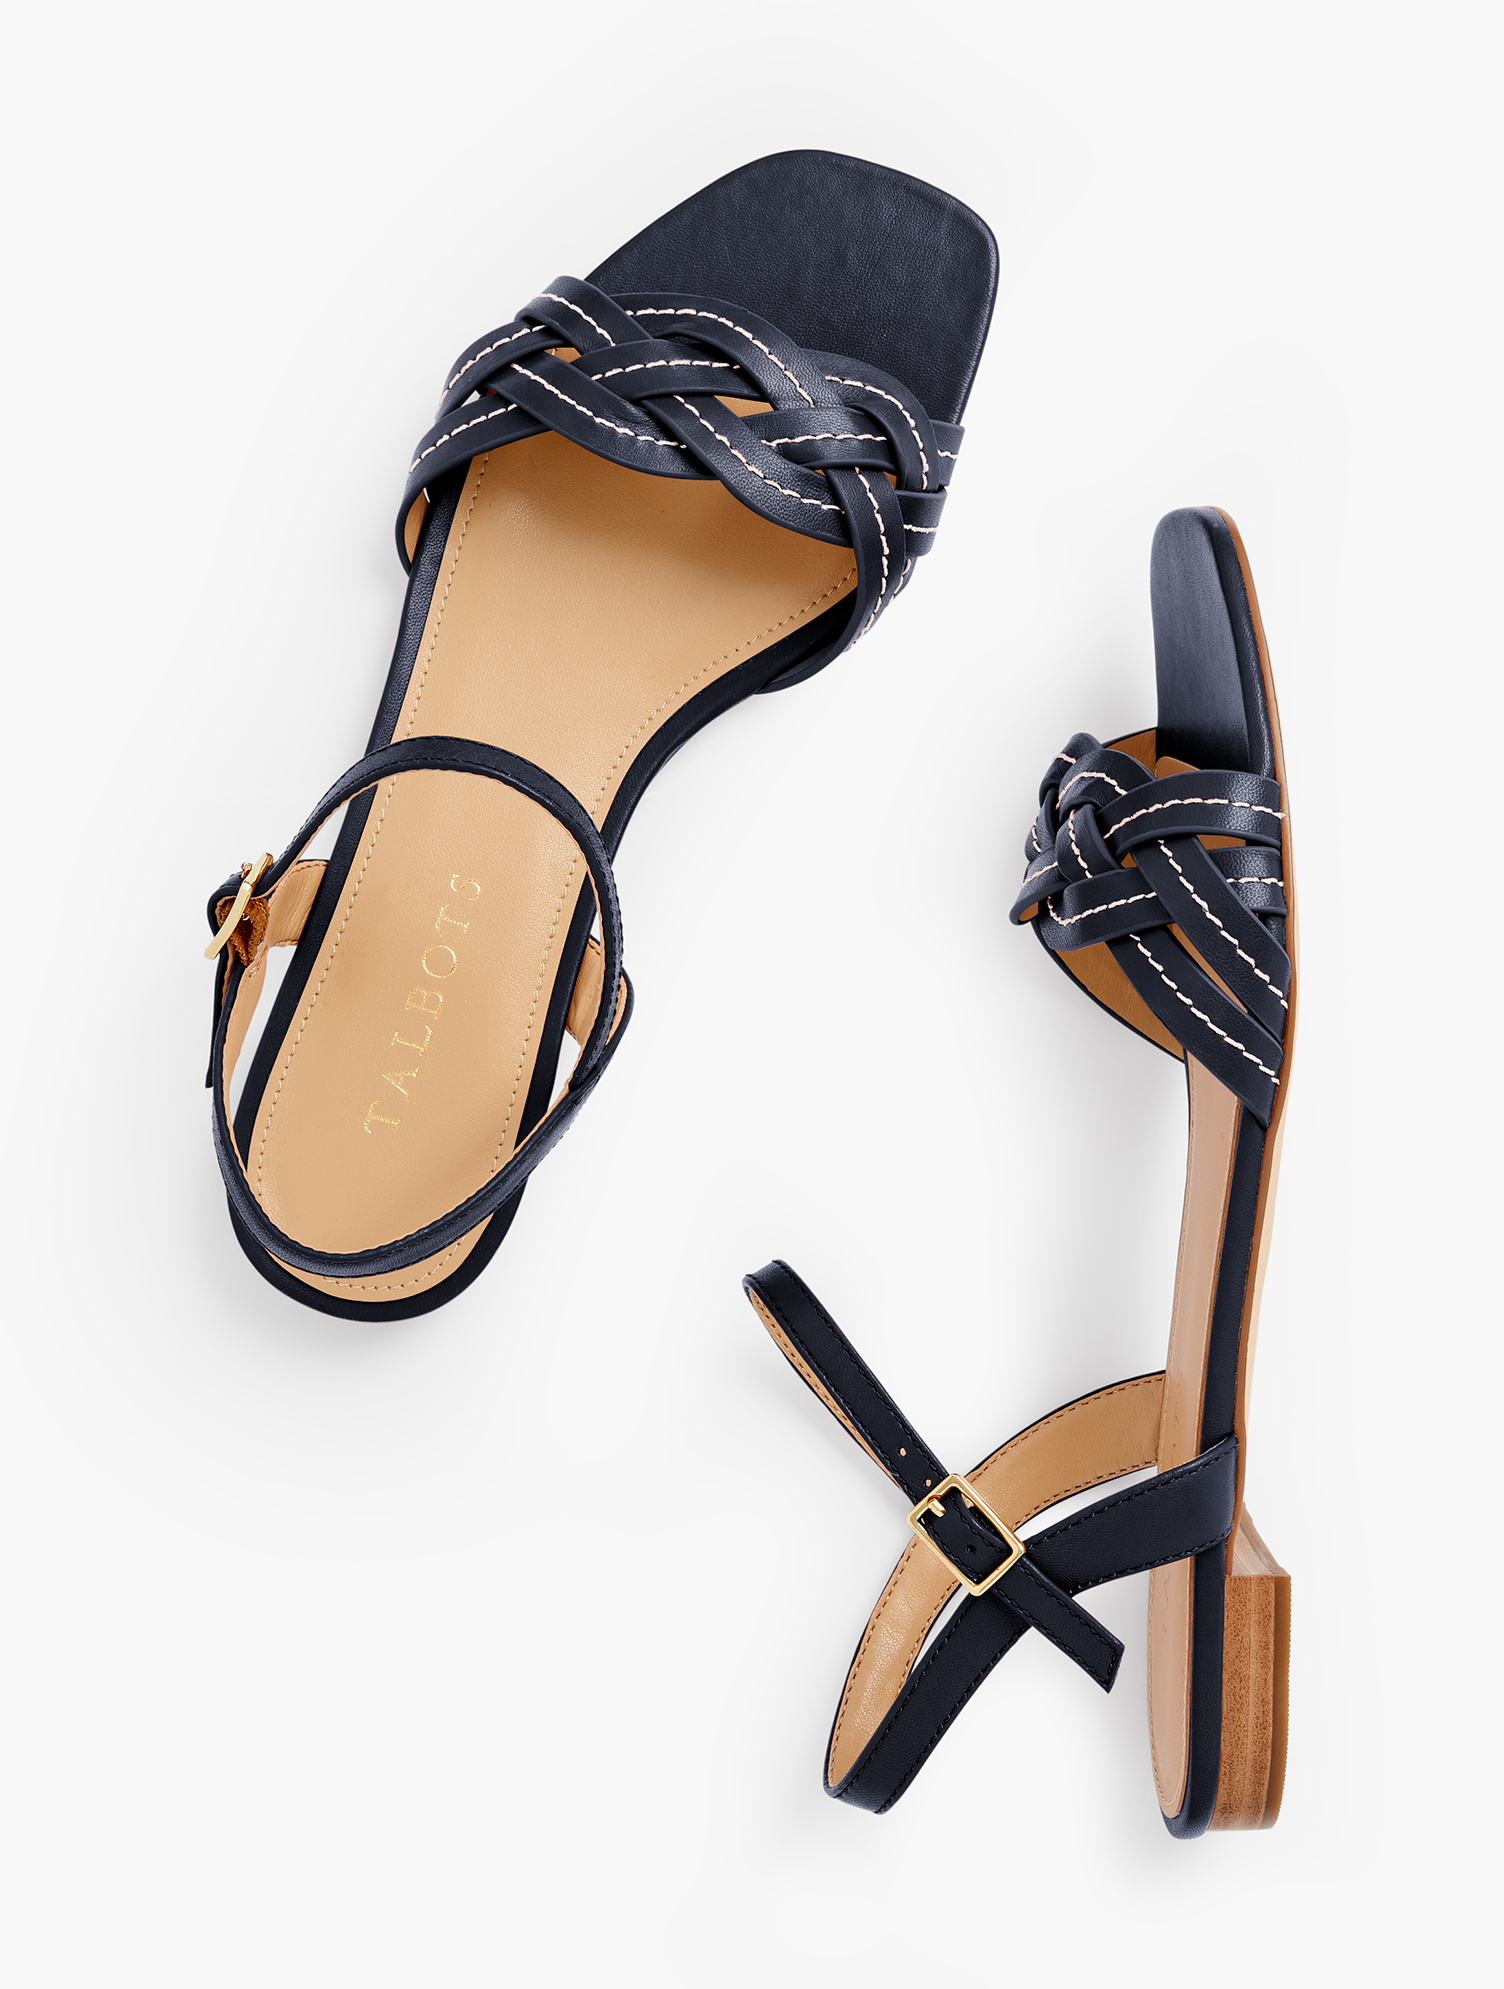 Our Violet braided sandals. Featuring an on-trend square footbed. In a variety of colors so you don\\\'t have to choose just one. Features 1/2 inches heelSquare ToeFlexible Non Skid Sole3Mm Memory Foam FootbedImported Material: 100% Leather Violet Braided Flat Sandals - Indigo - 7M Talbots